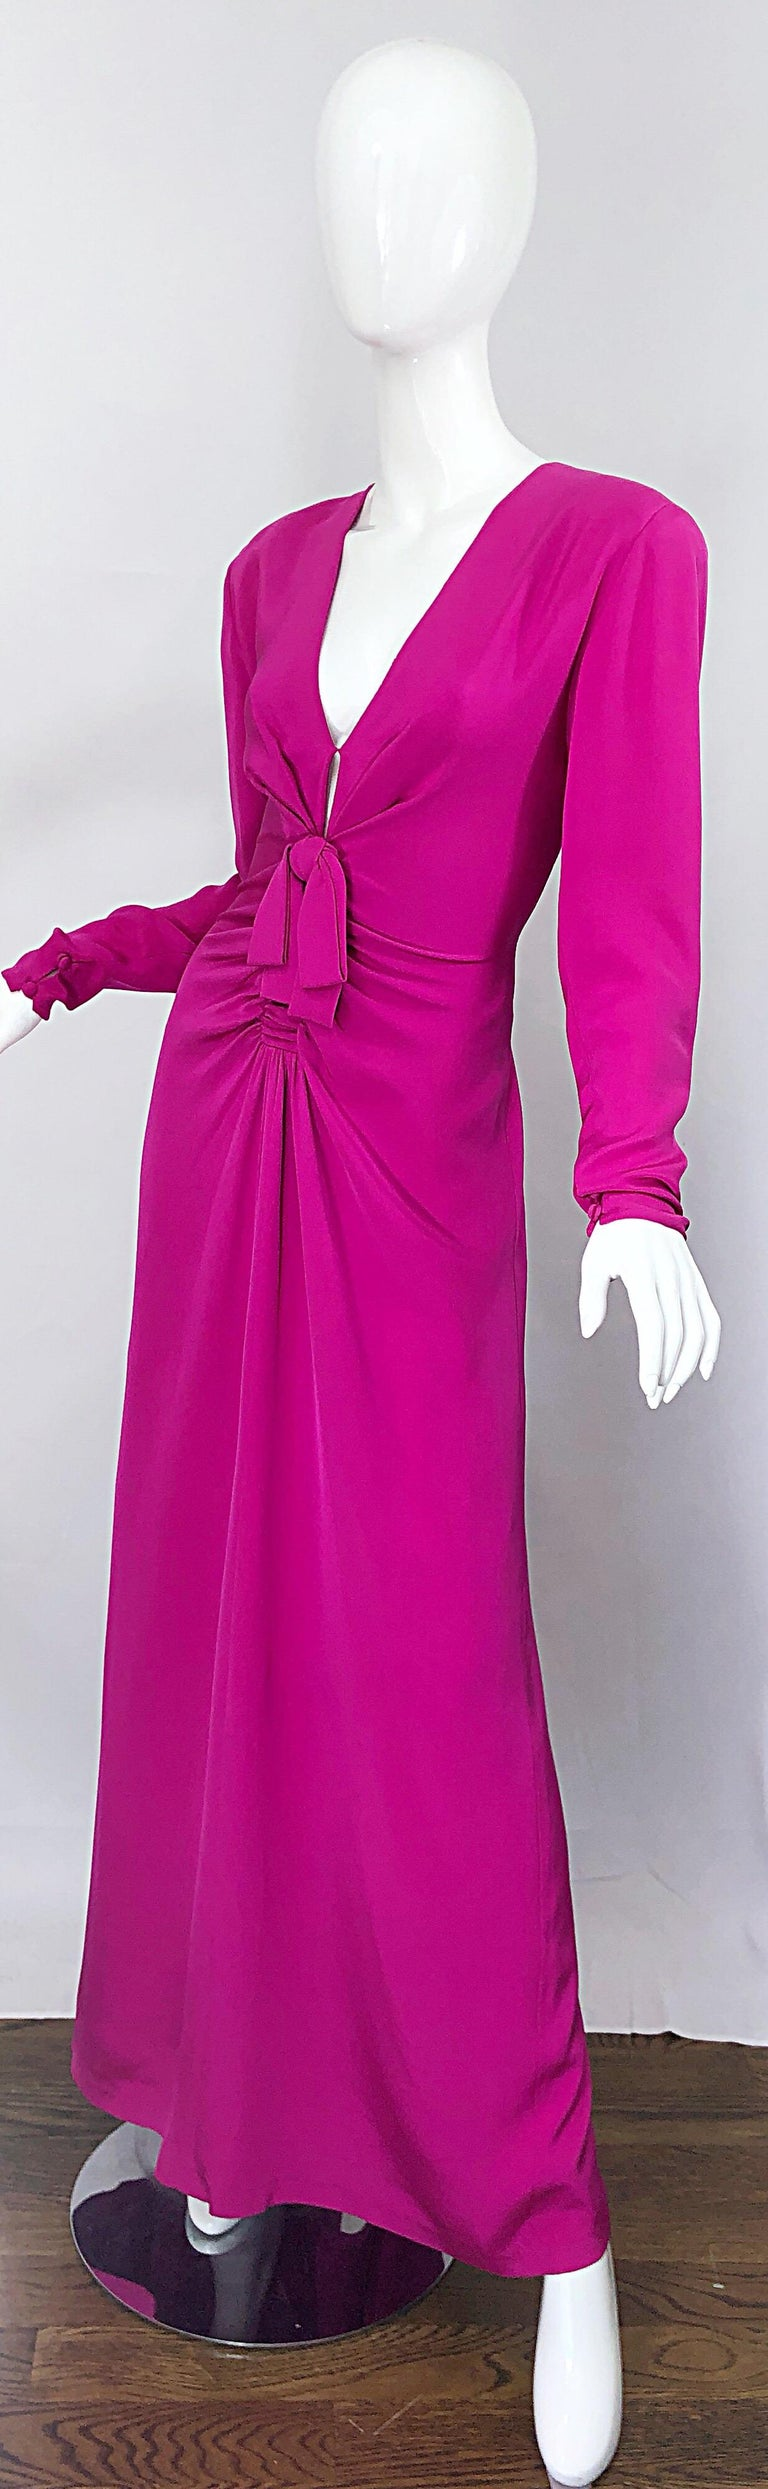 Vintage Bill Blass Size 10 Hot Pink Silk Jersey Cut - Out 1980s 80s Evening Gown For Sale 1